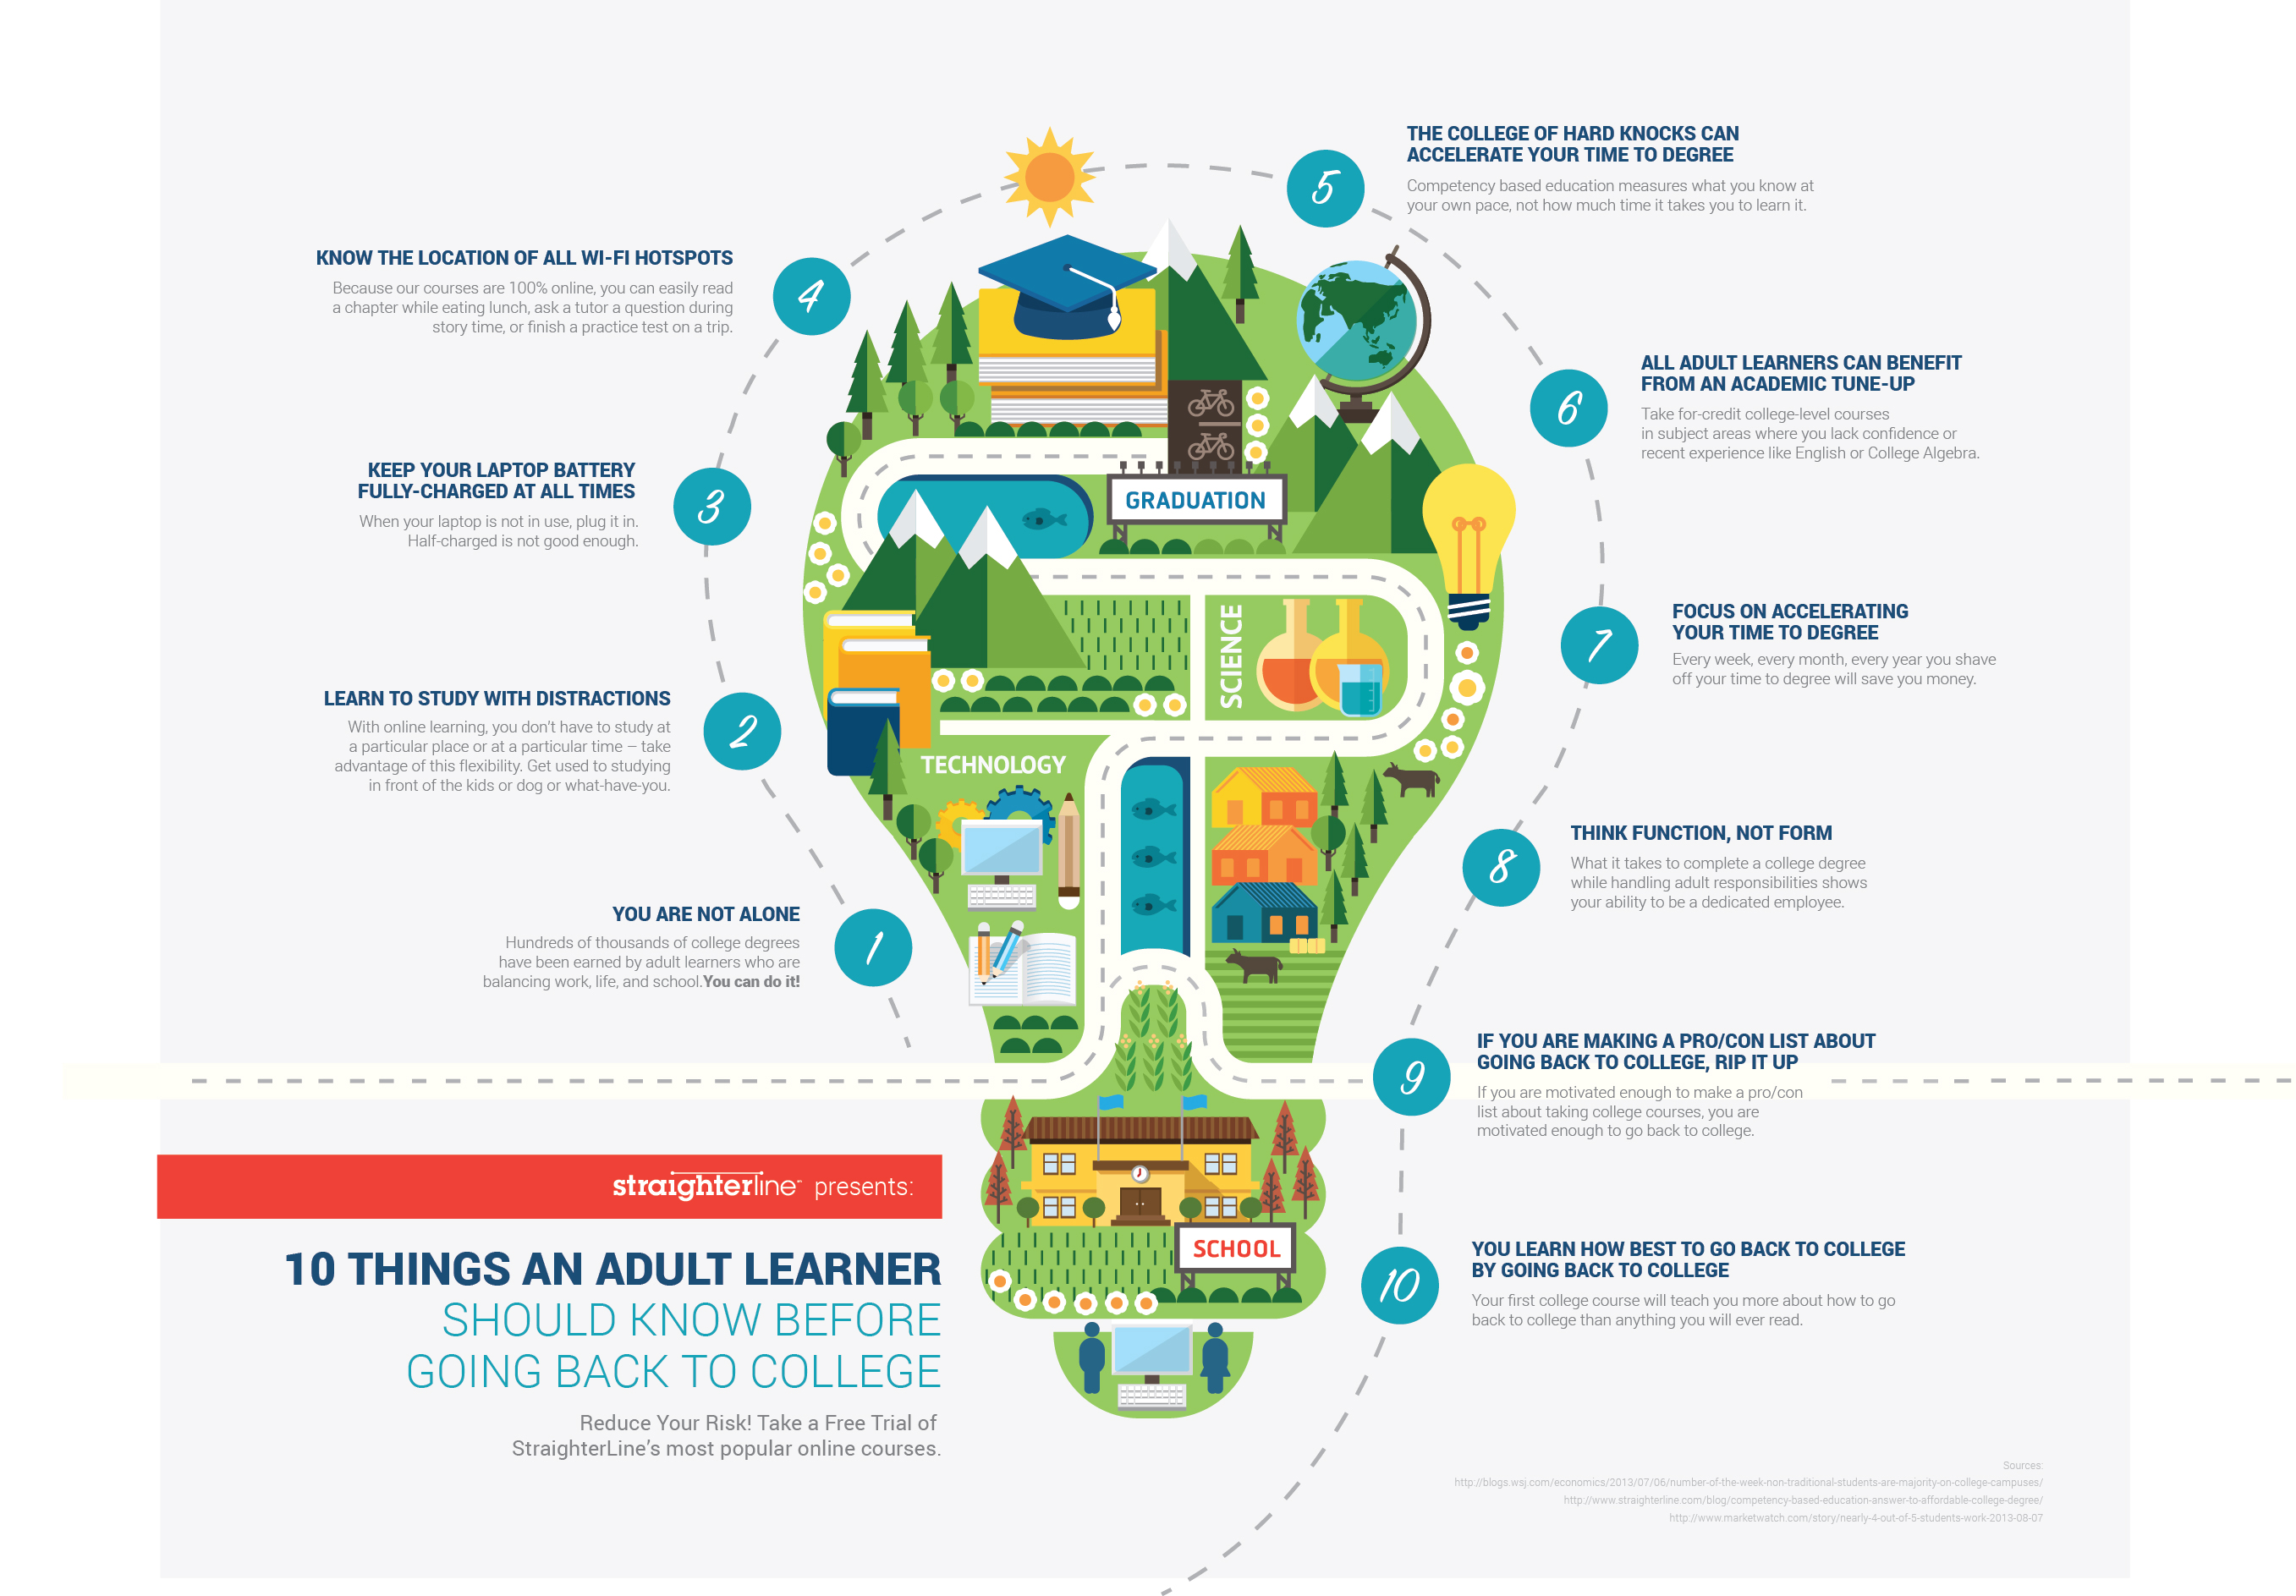 Top 10 Things Adult Learners Need to Know